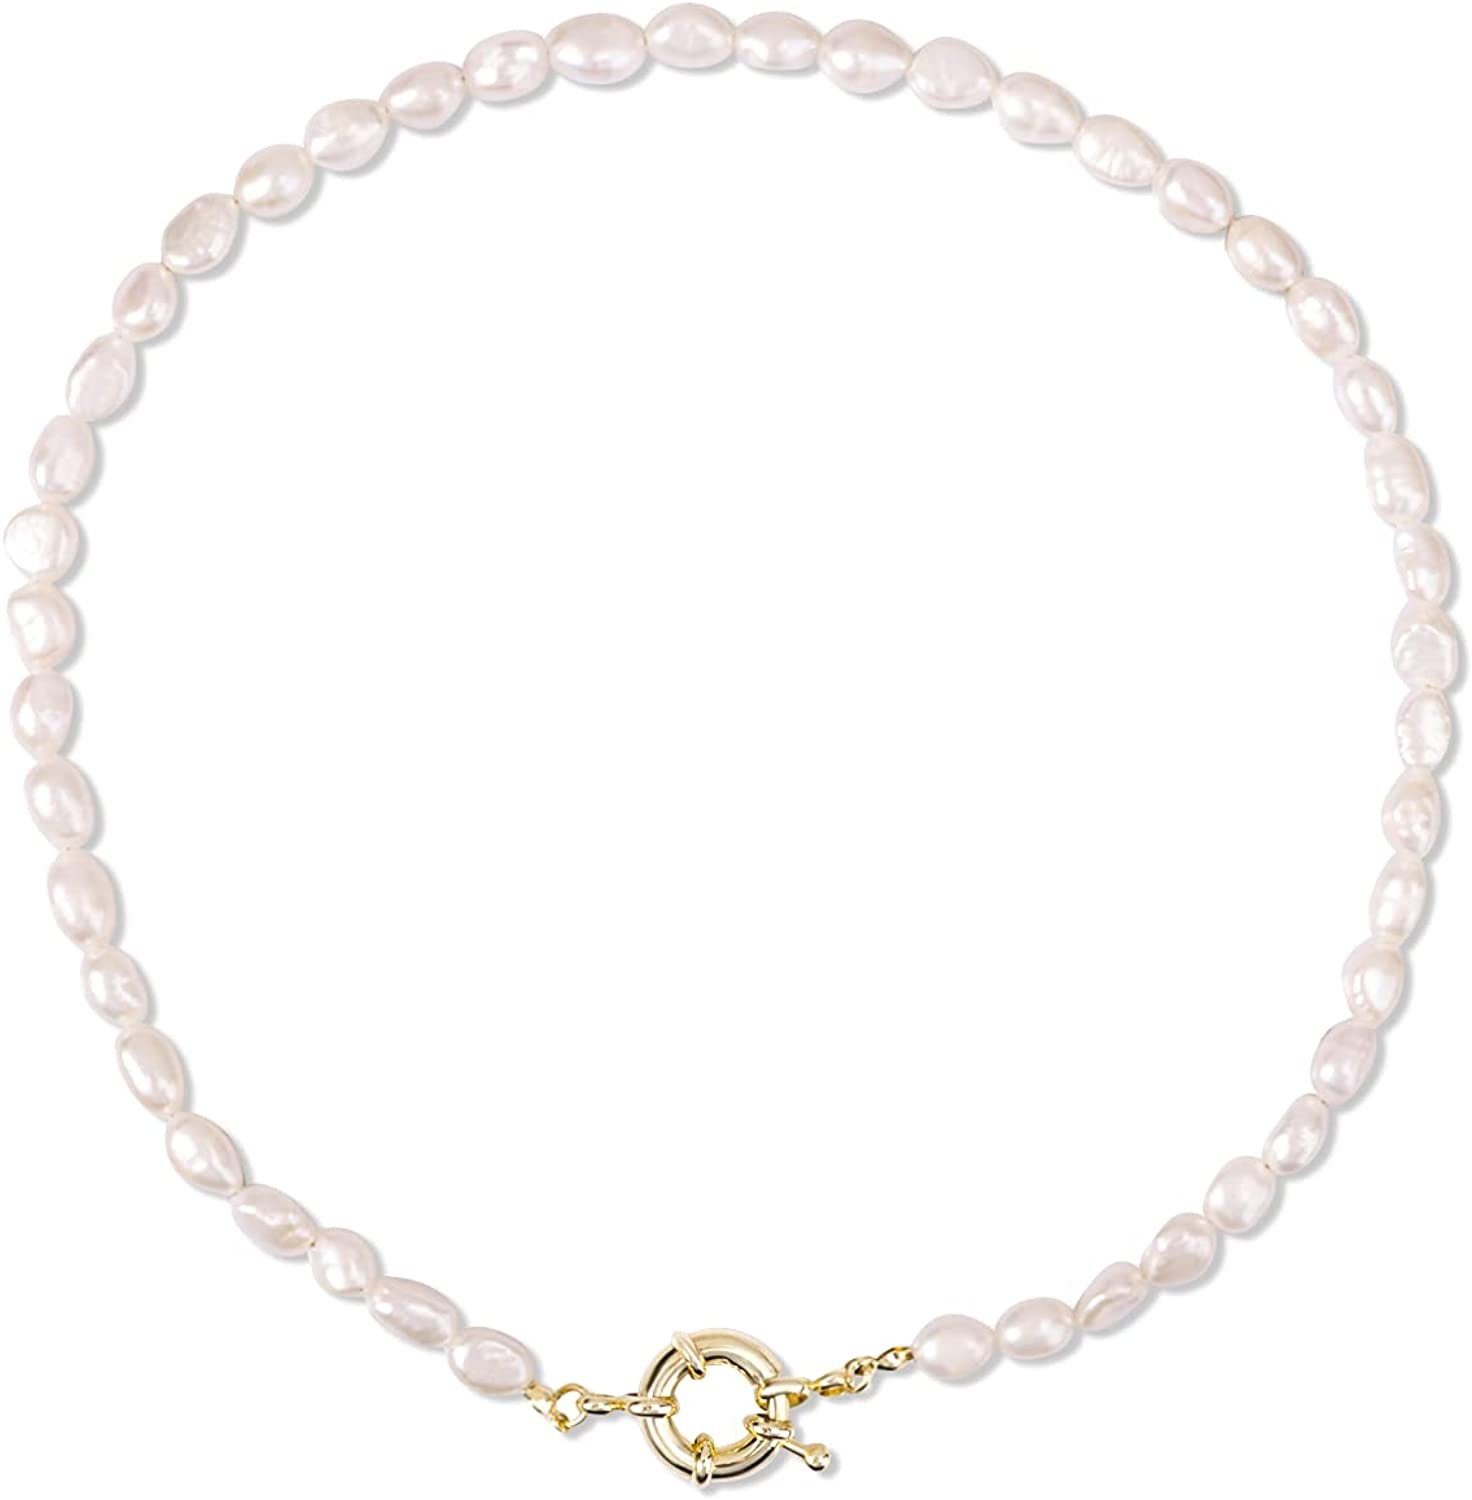 NEWPAEAN Pearl Necklace for Women Girls, Dainty Irregular Baroque Pearl Choker Simple Jewelry with Spring Clasp, Birthday Wedding